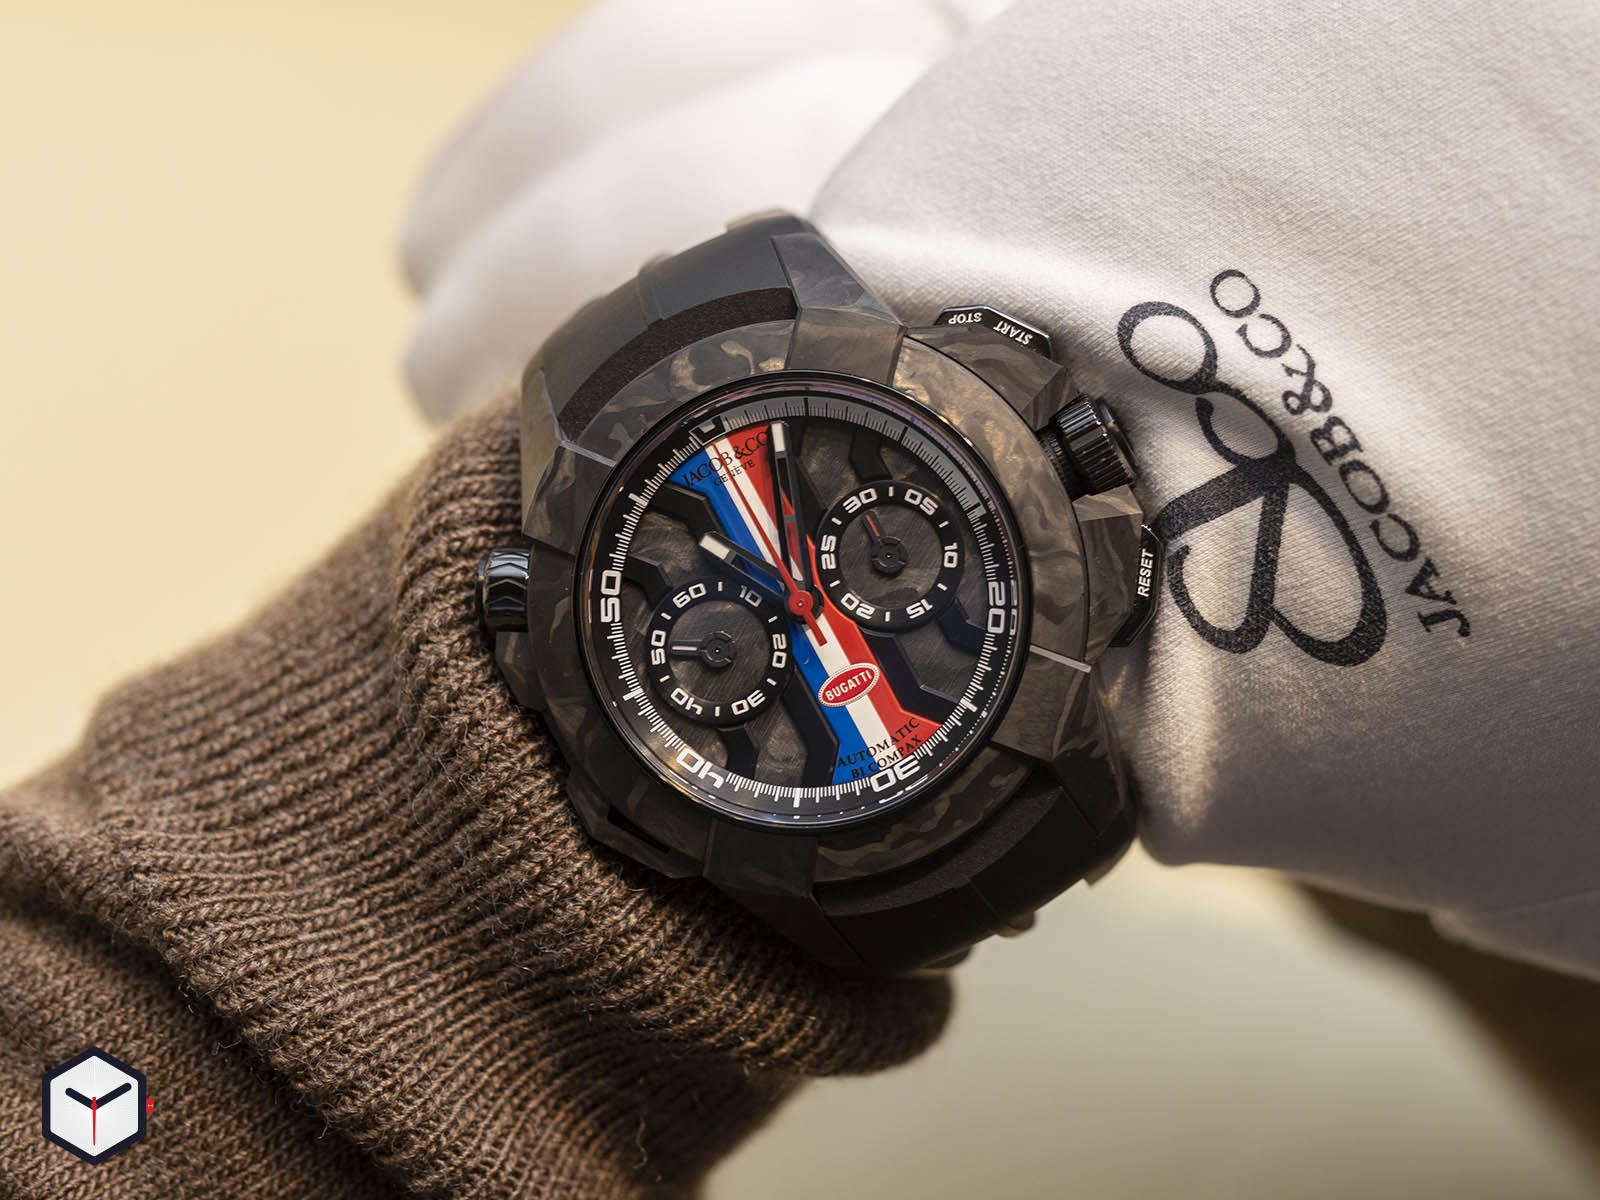 ec333-29-aa-aa-a-jacob-co-epic-x-chrono-bugatti-baselworld-2019-7.jpg